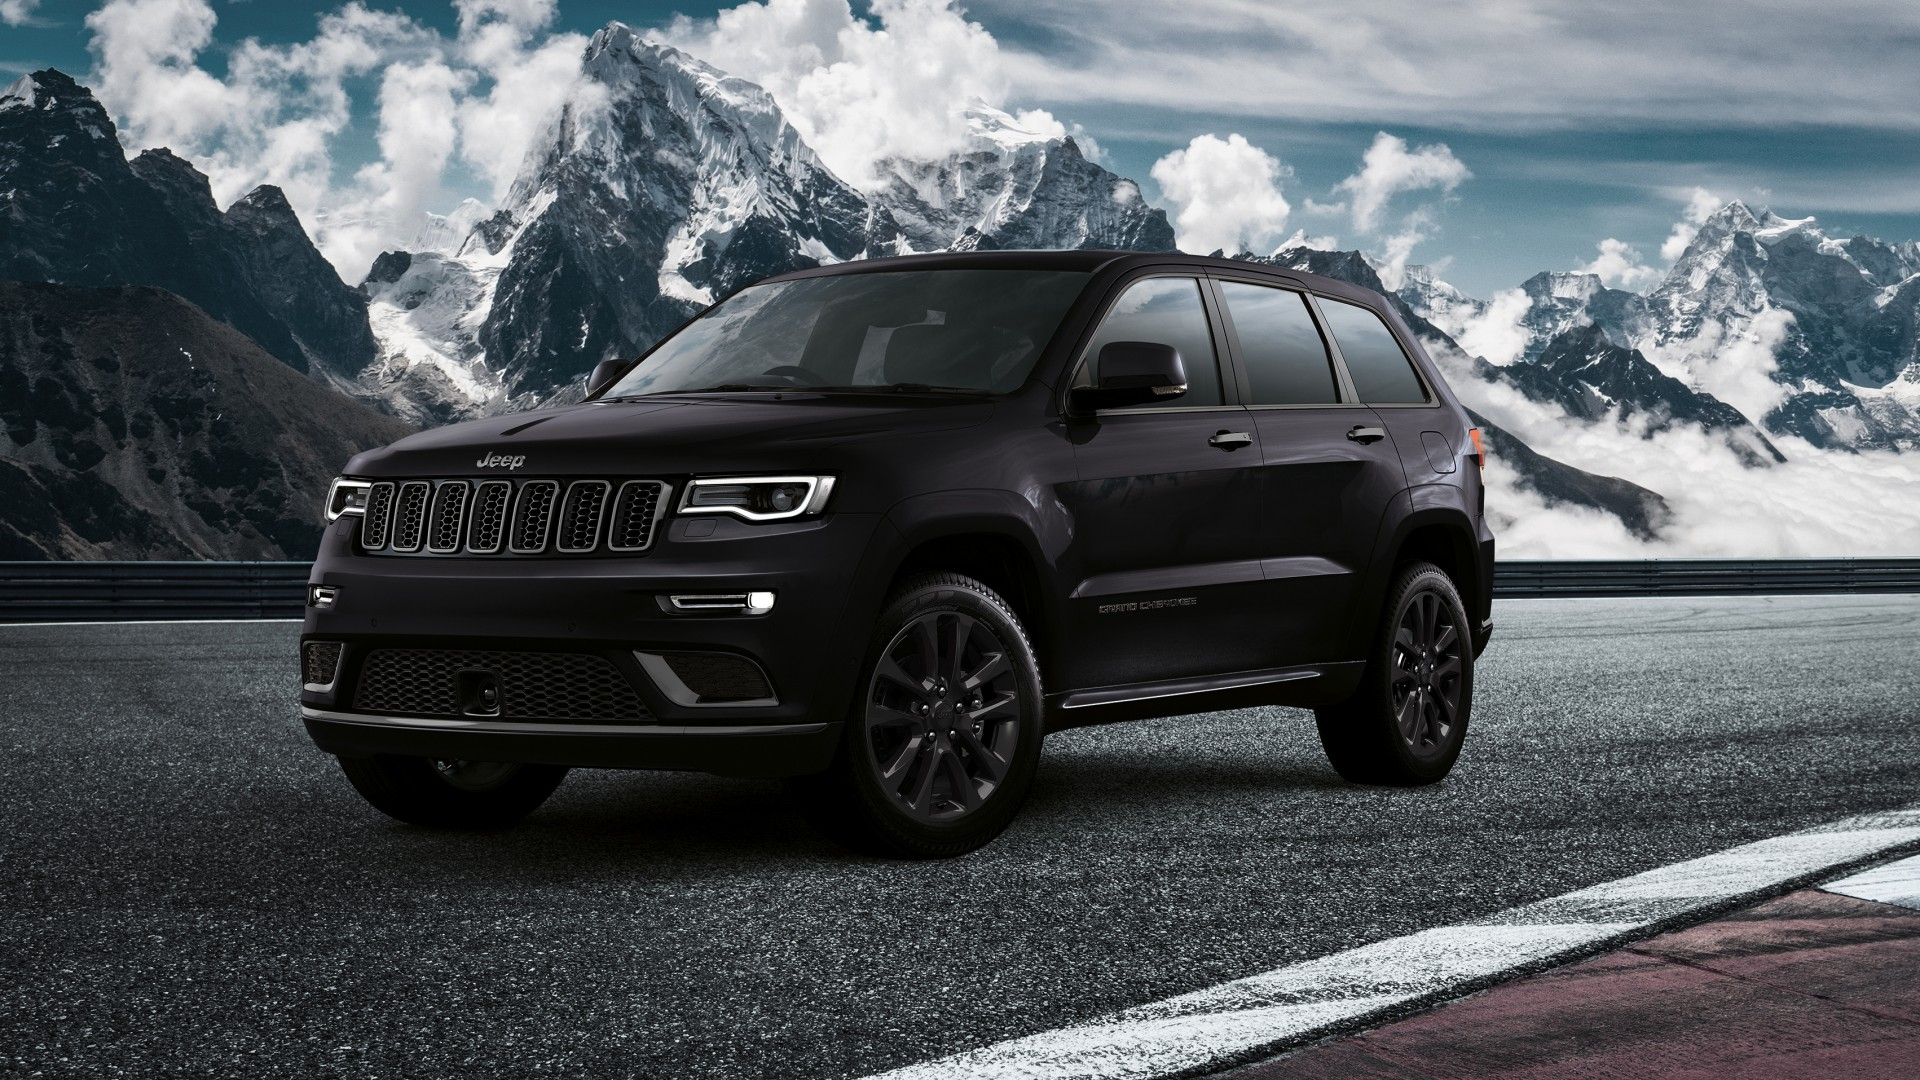 Hd Wallpapers 2019 Jeep Grand Cherokee S Wallpaper Hd Car Wallpapers